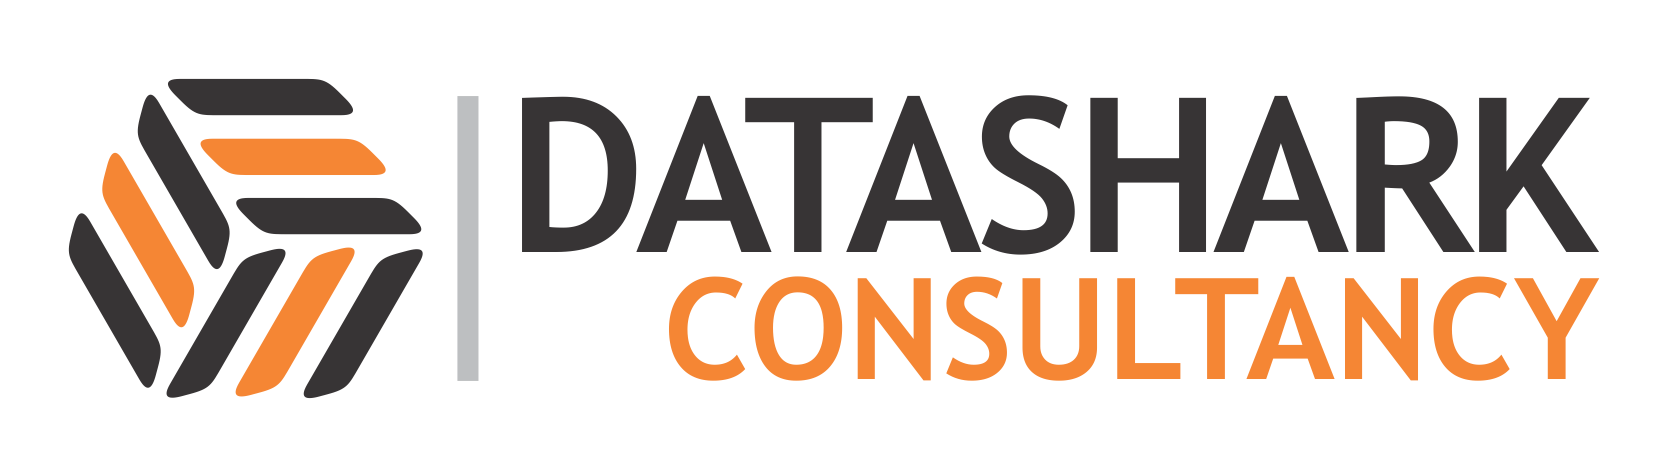 Datashark Consultancy || Business Intelligence || Data & Analytics